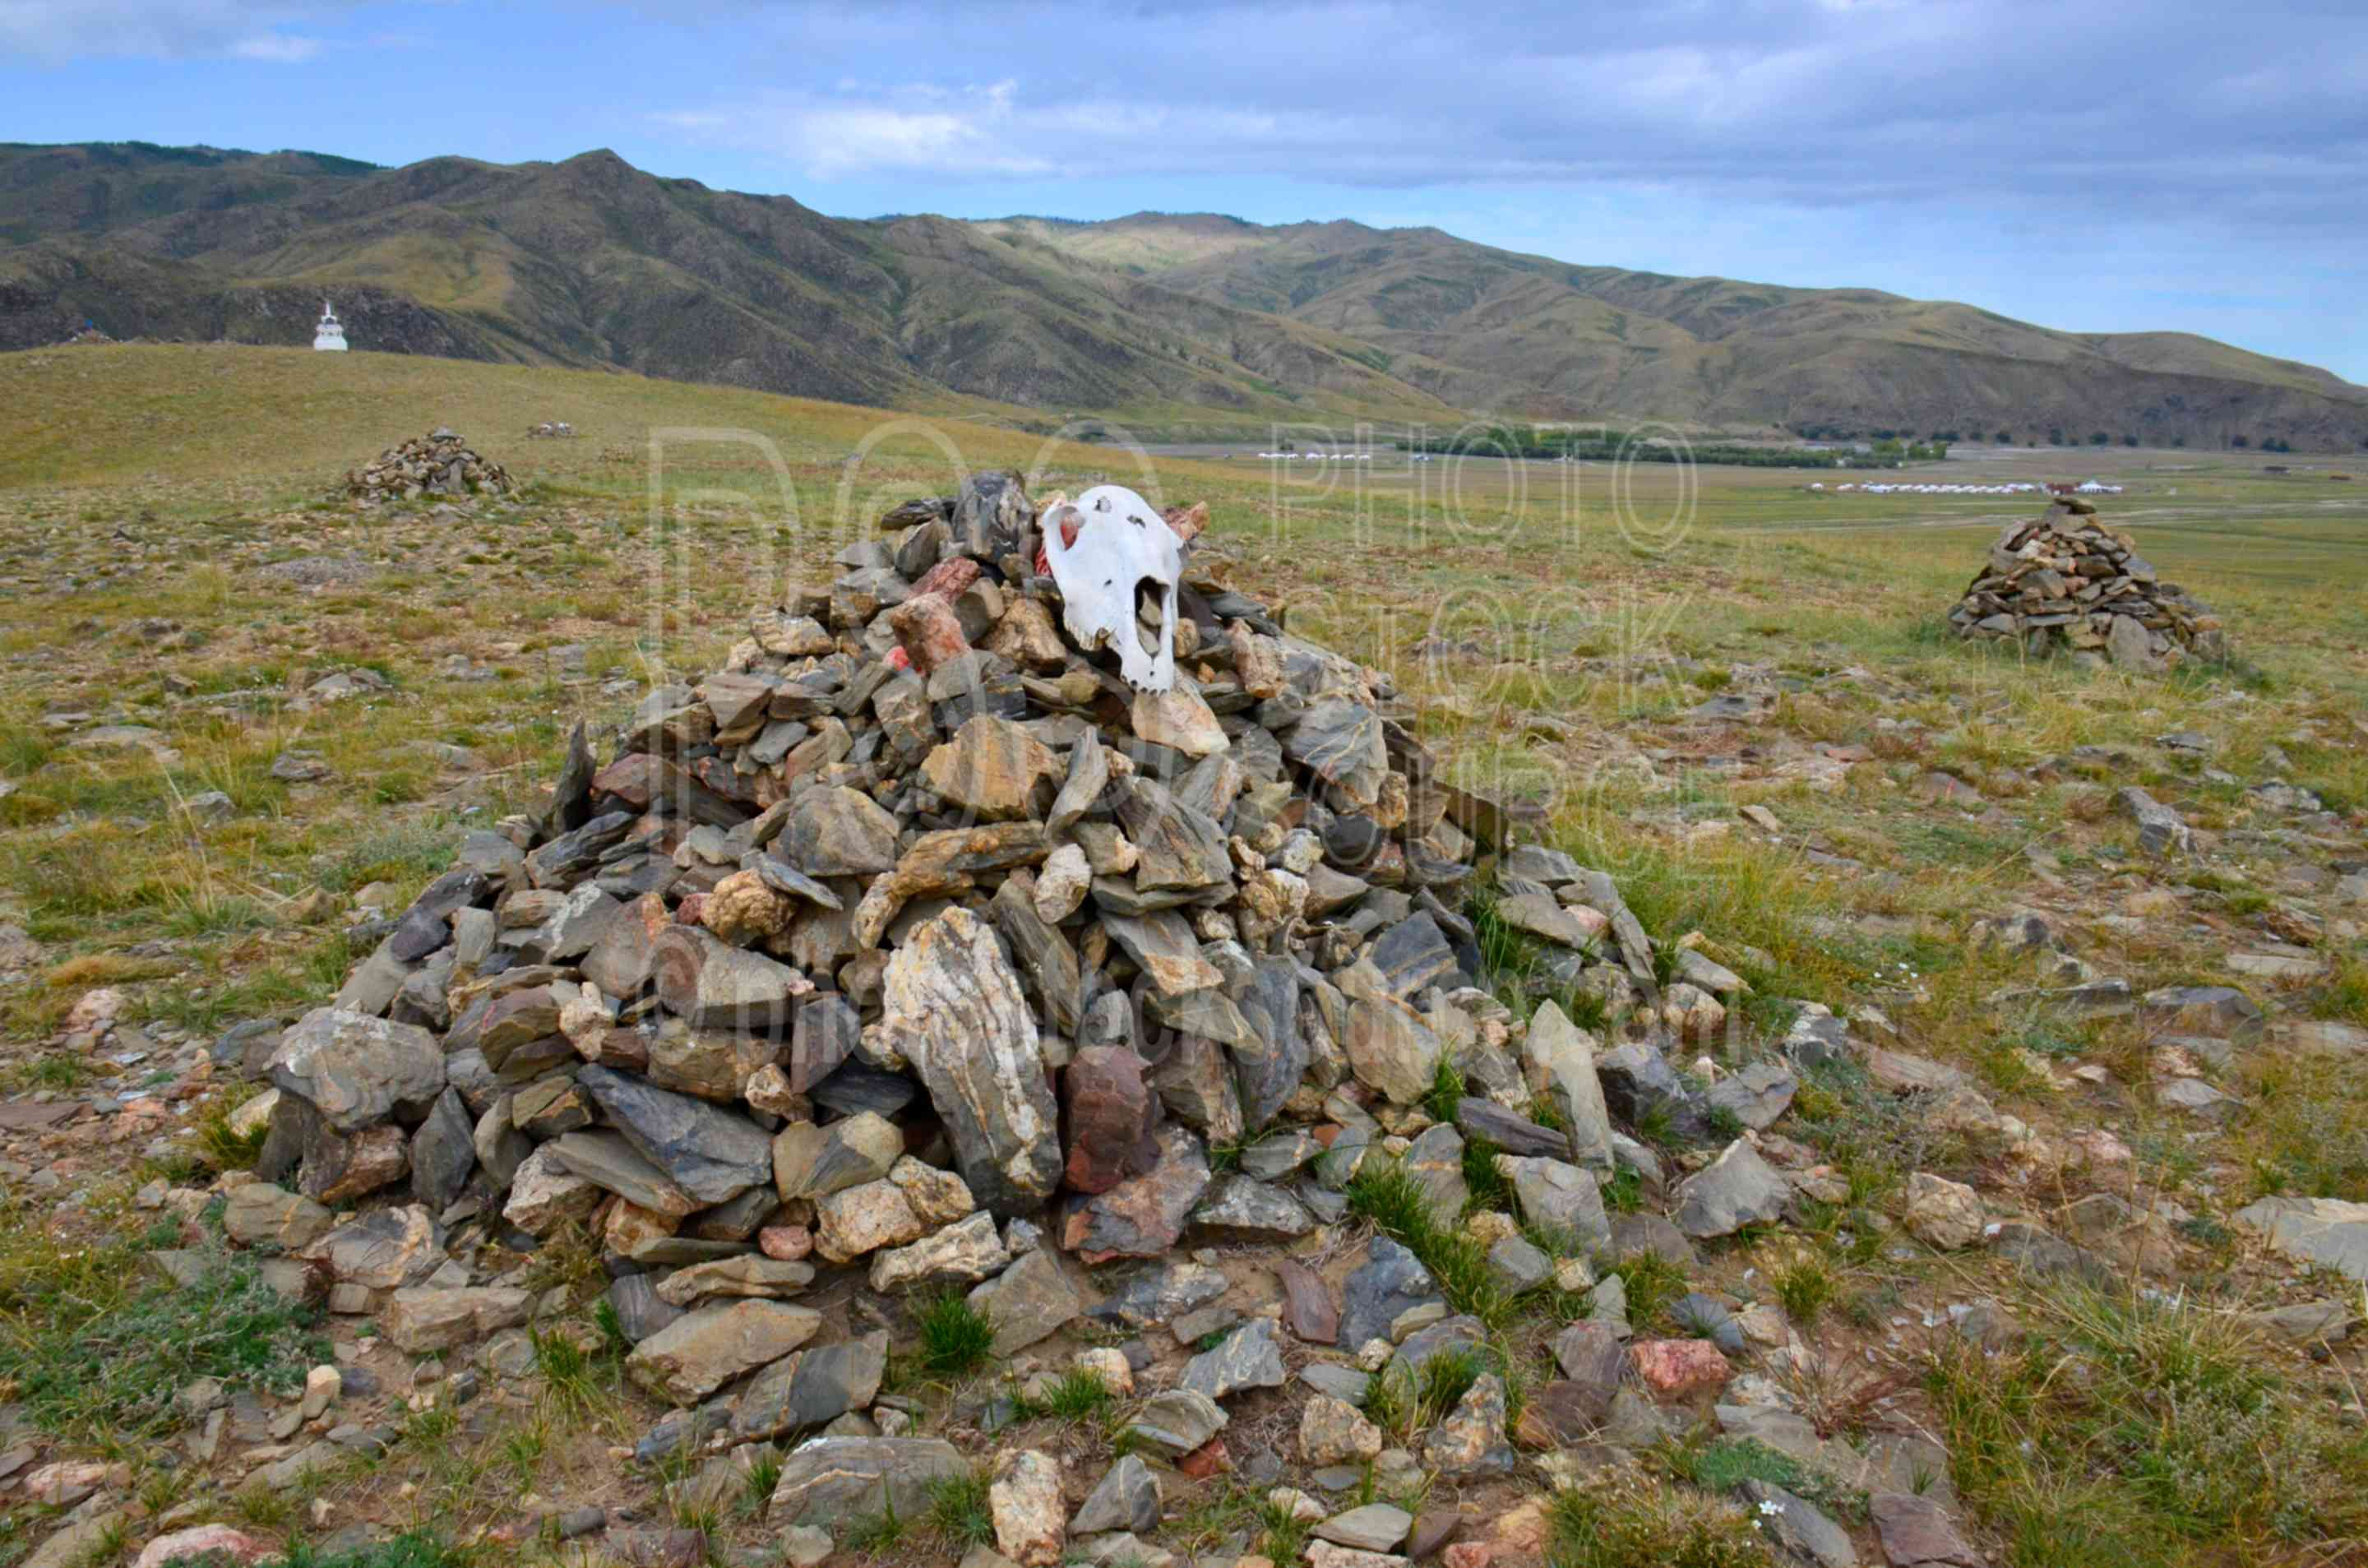 Ovoo with Cow Skulls,viewpoint,ovoo,skulls,bones,cow skulls